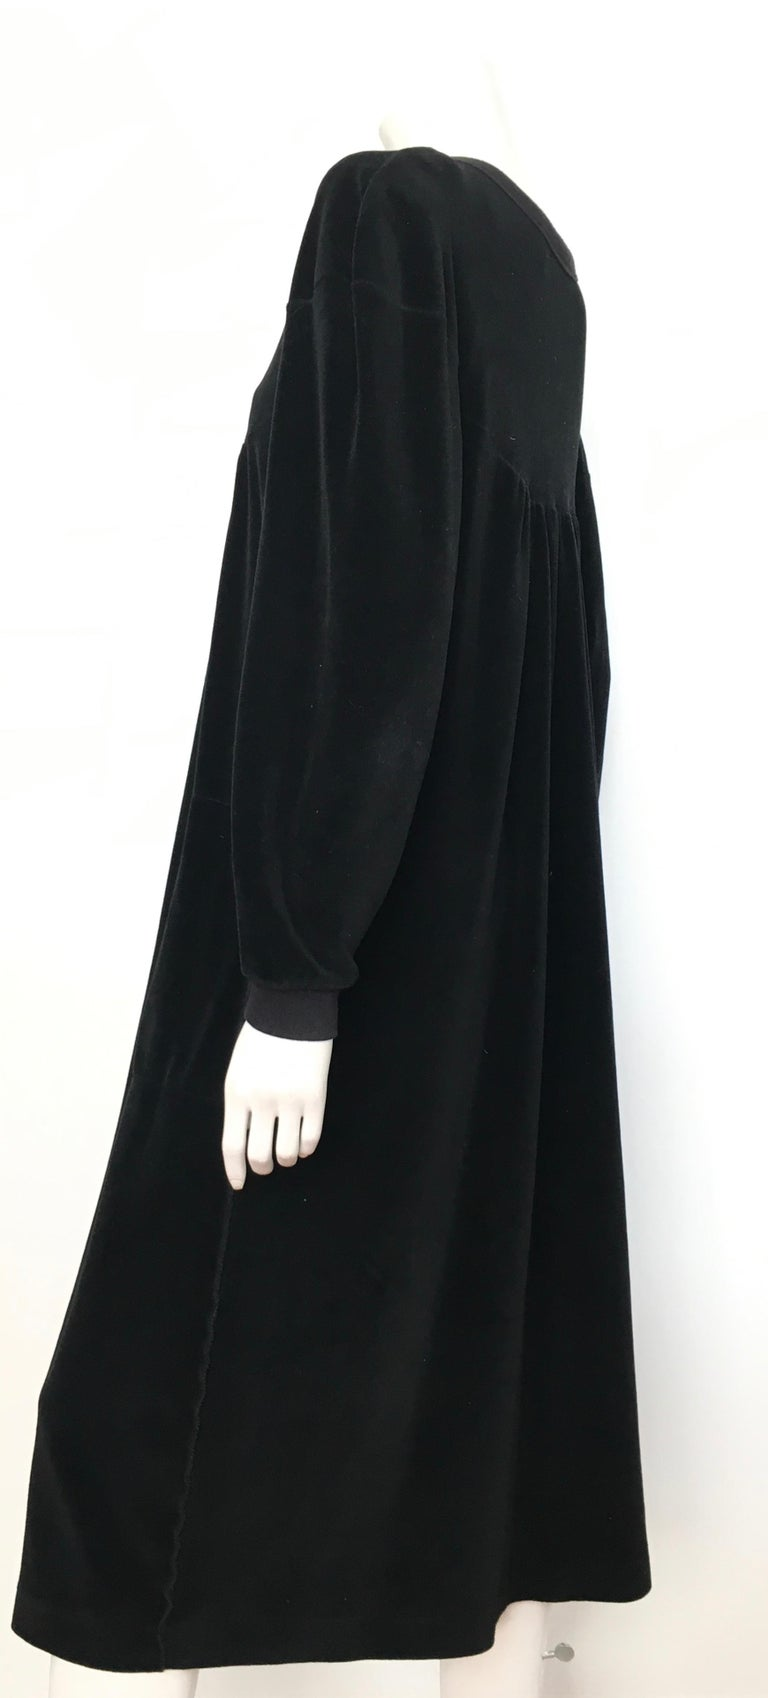 Sonia Rykiel 1980s Black Velour Dress with Pockets & Cardigan Size Large. For Sale 6